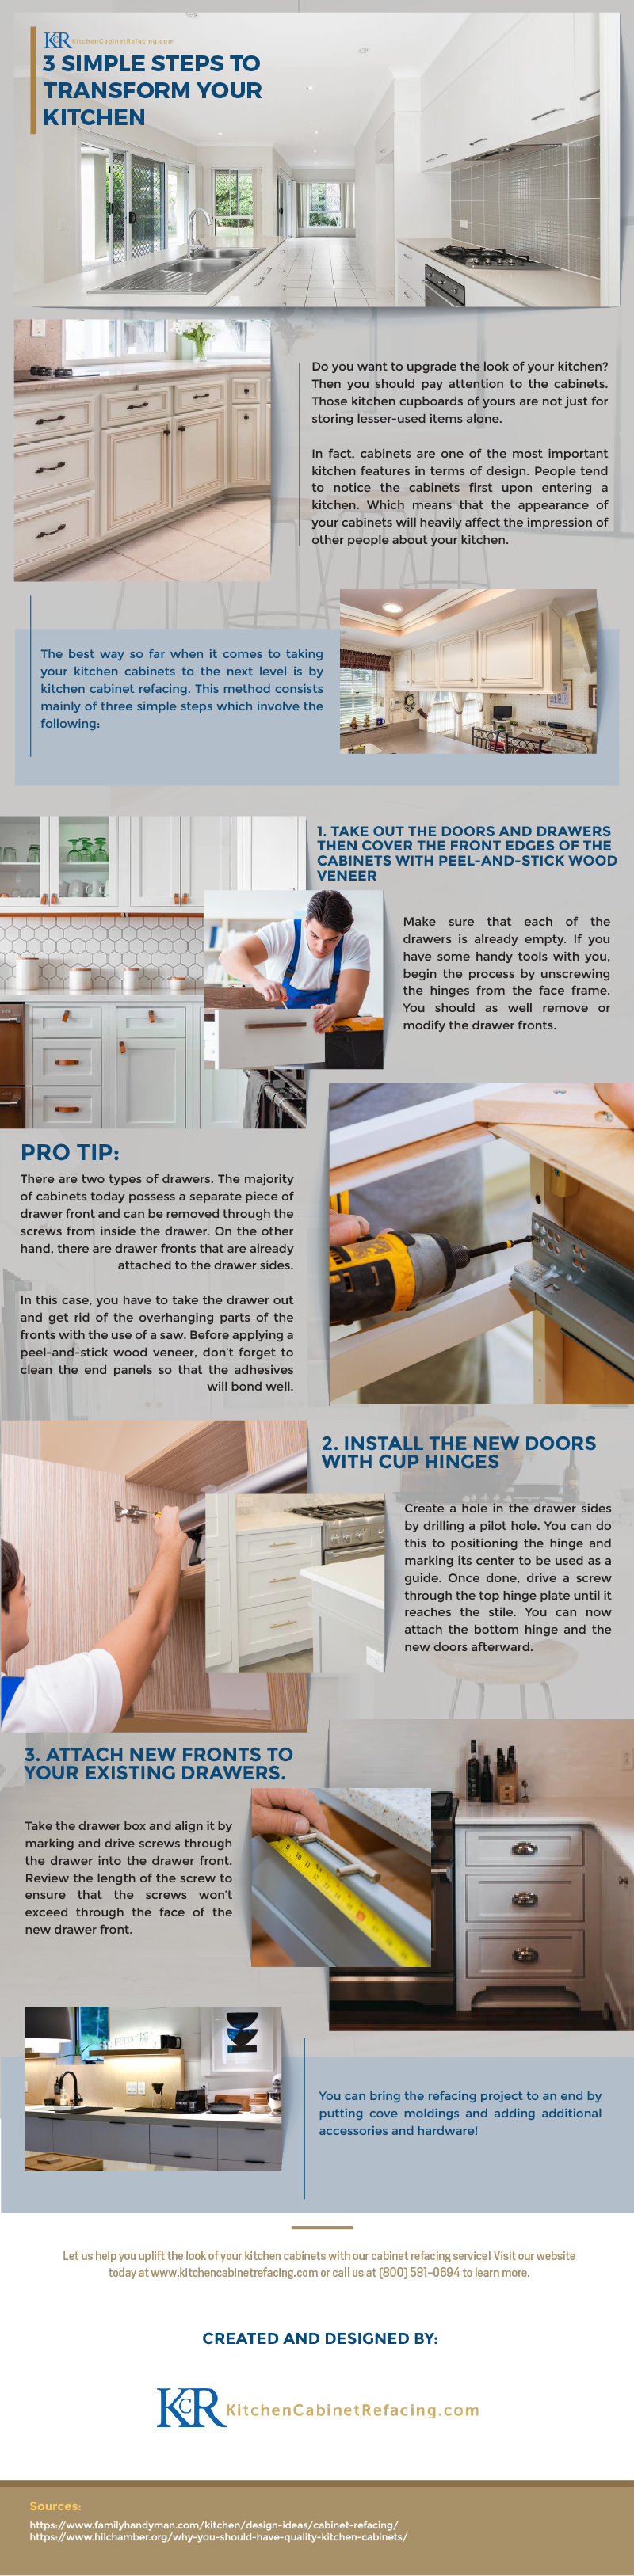 3 Simple Steps to Transform Your Kitchen Cabinets - Infographic